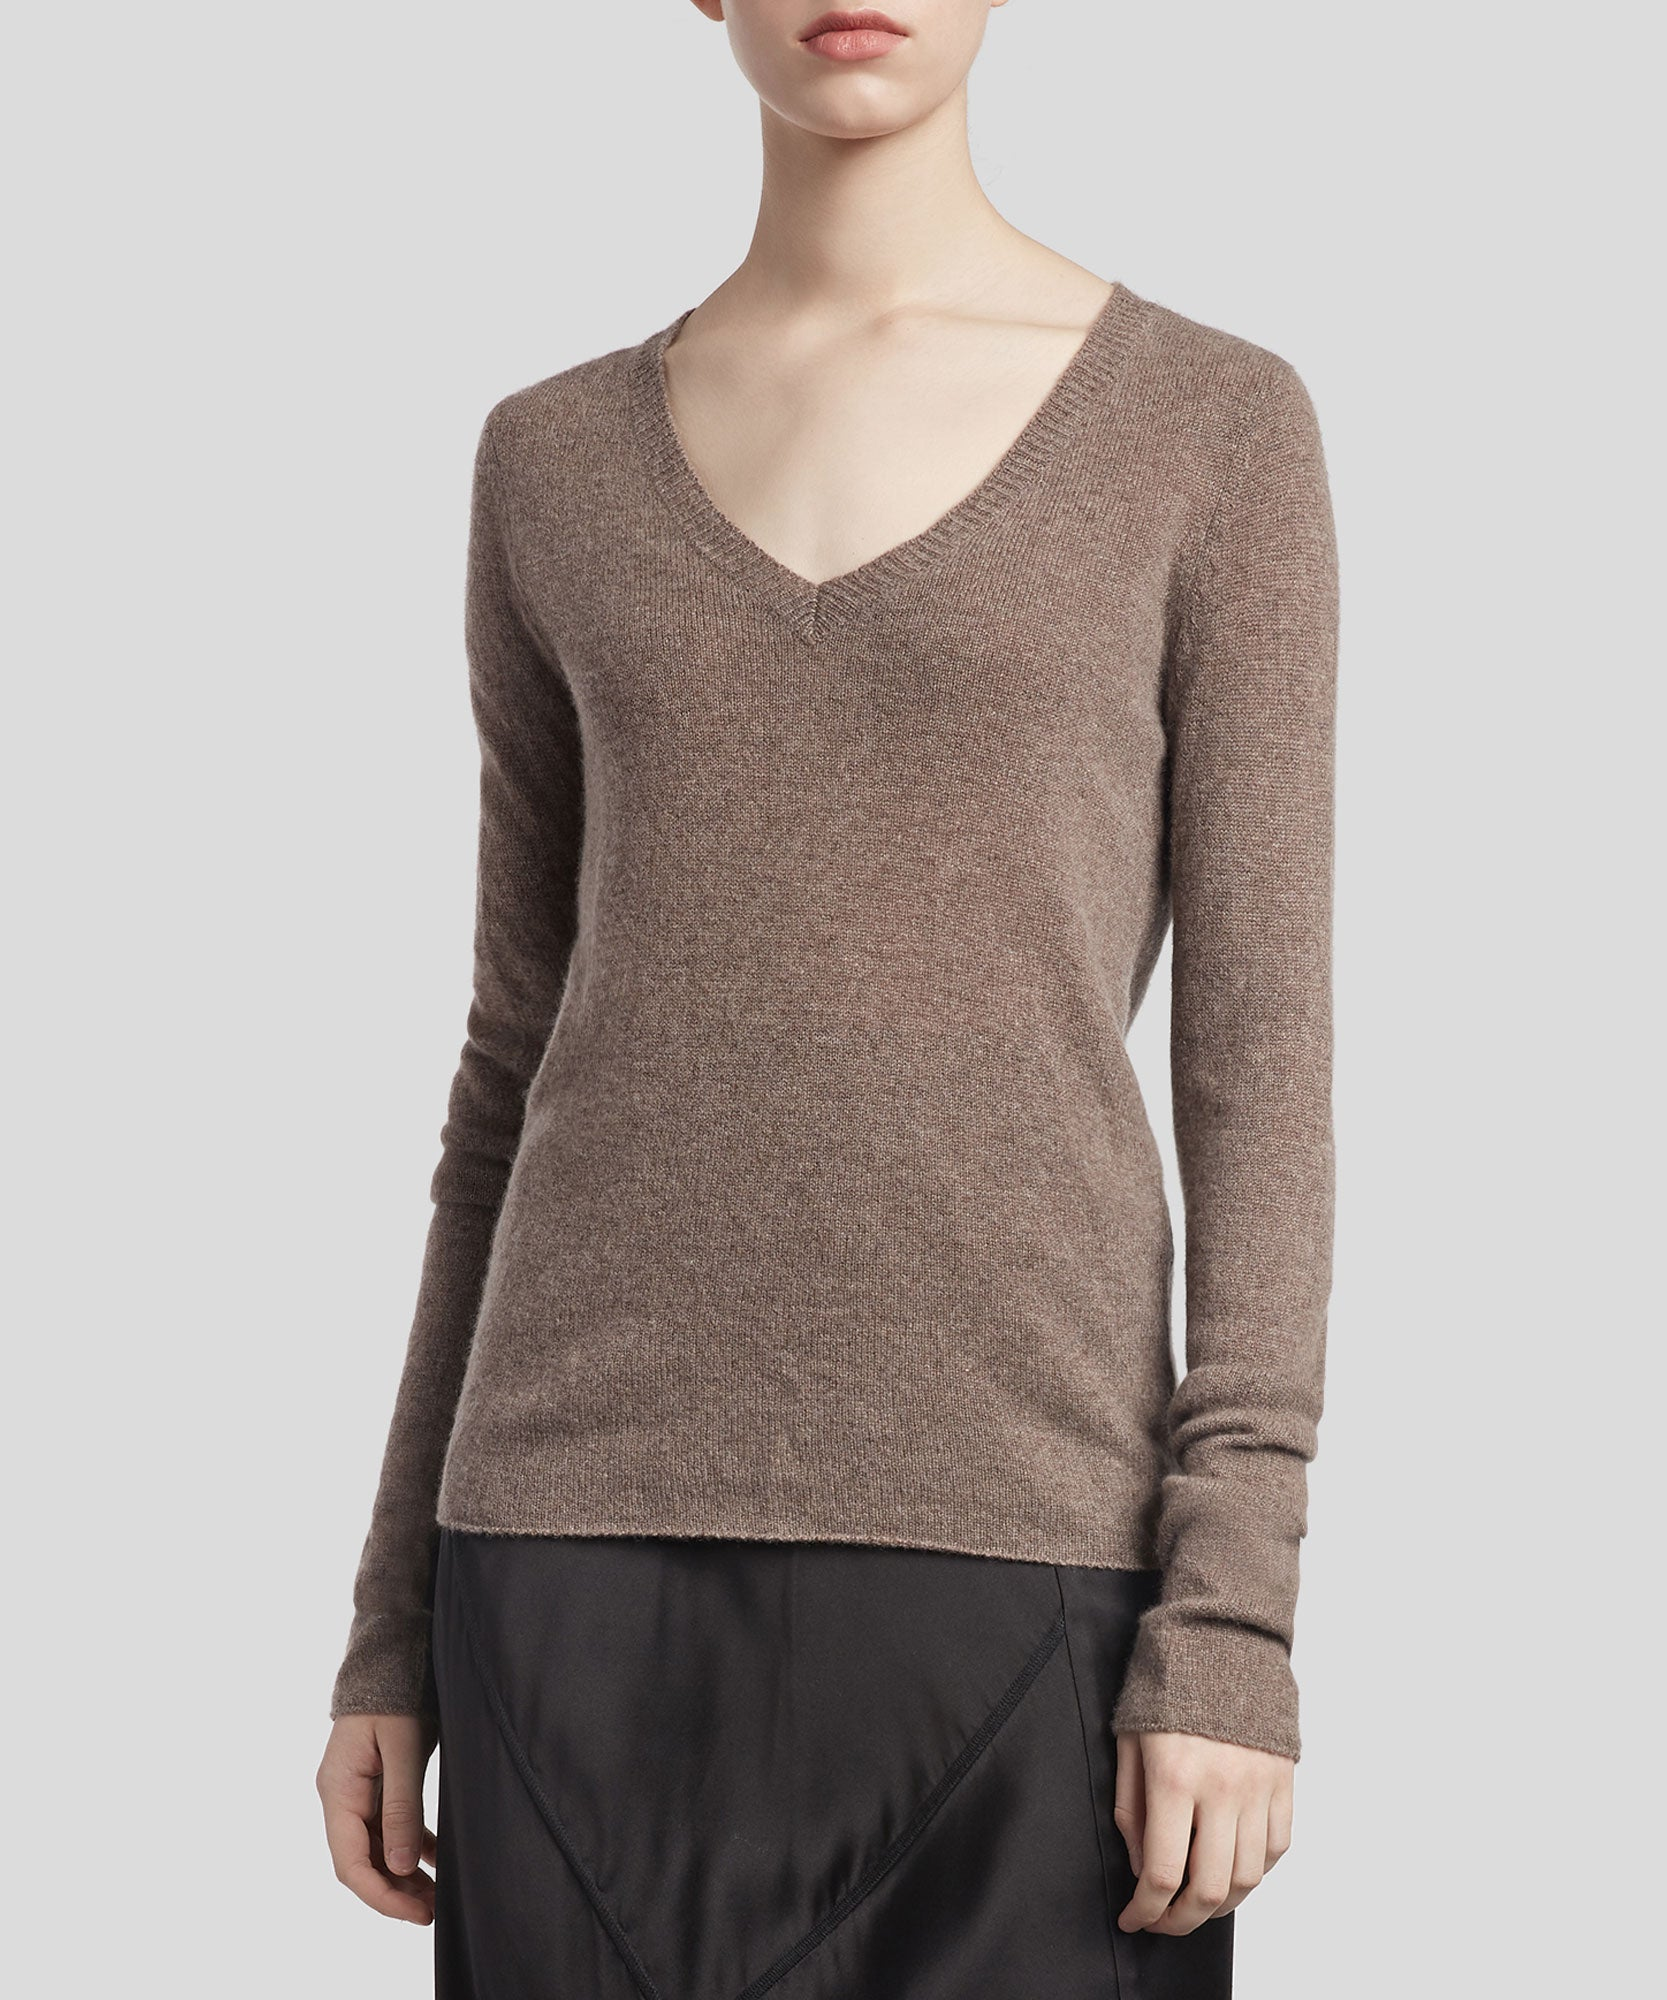 Truffle Cashmere V-Neck Sweater - Women's Luxe Sweater by ATM Anthony Thomas Melillo